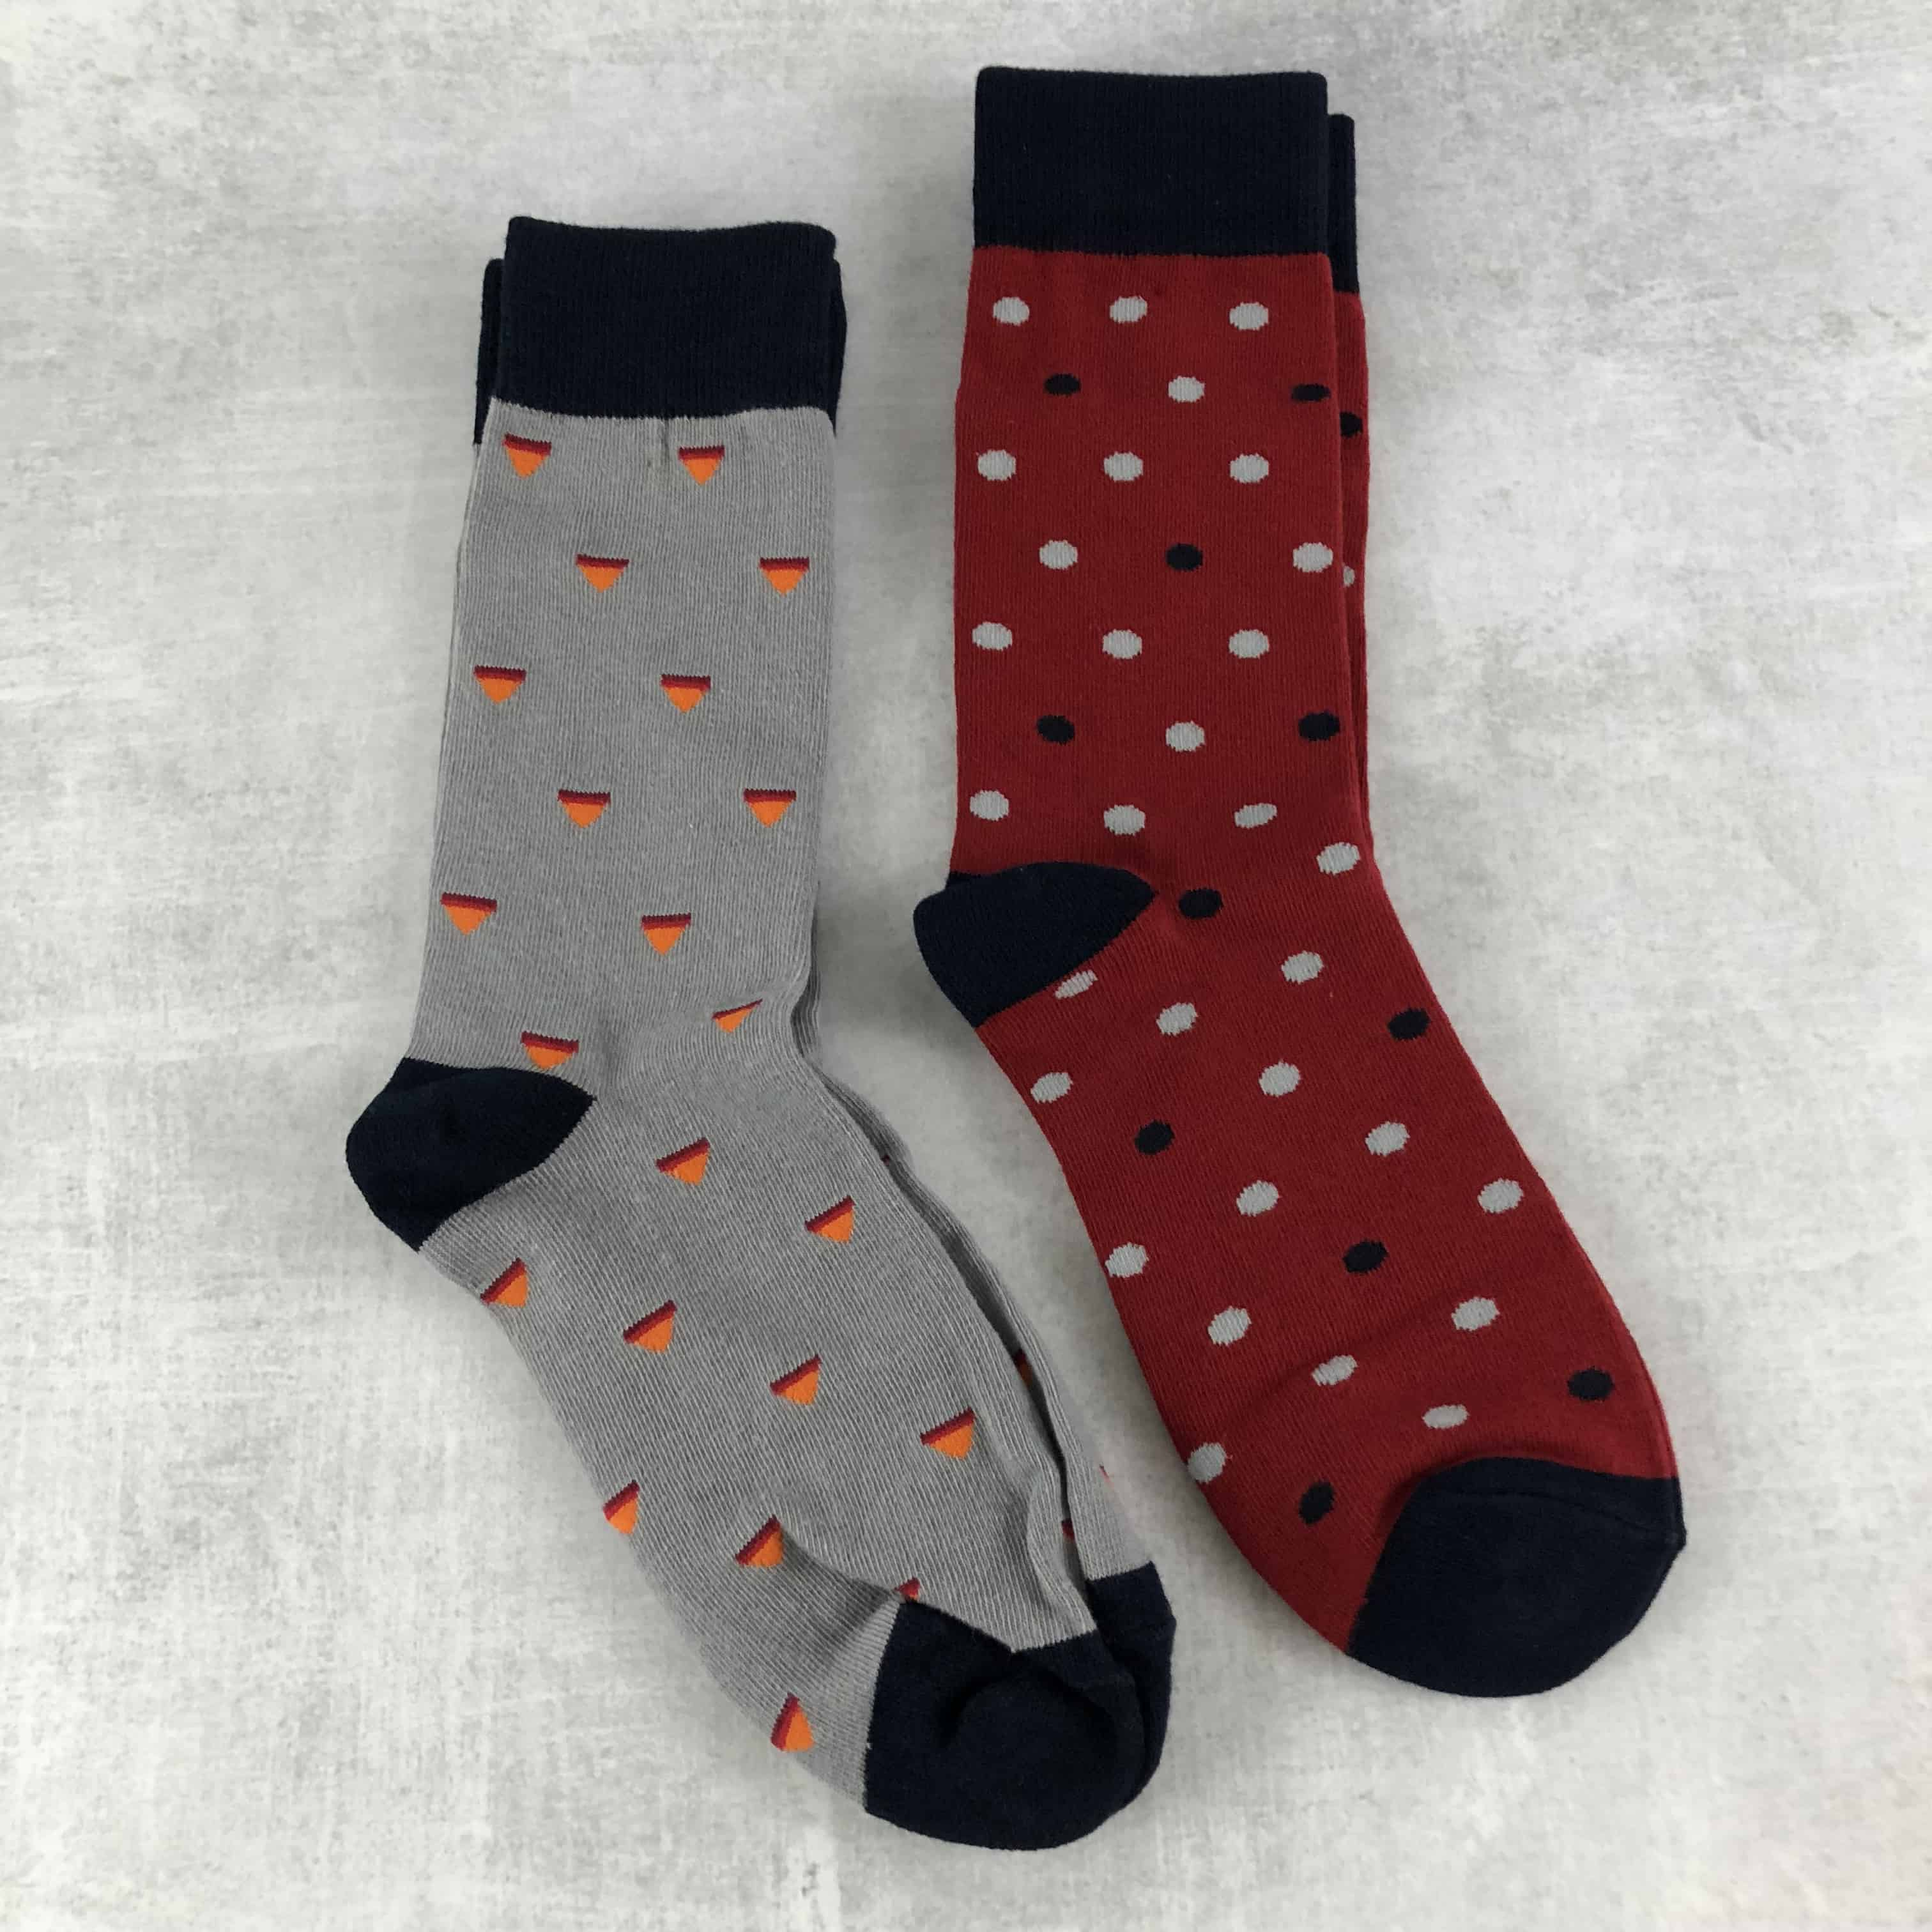 Society Socks February 2018 Subscription Box Review + 50% Off Coupon